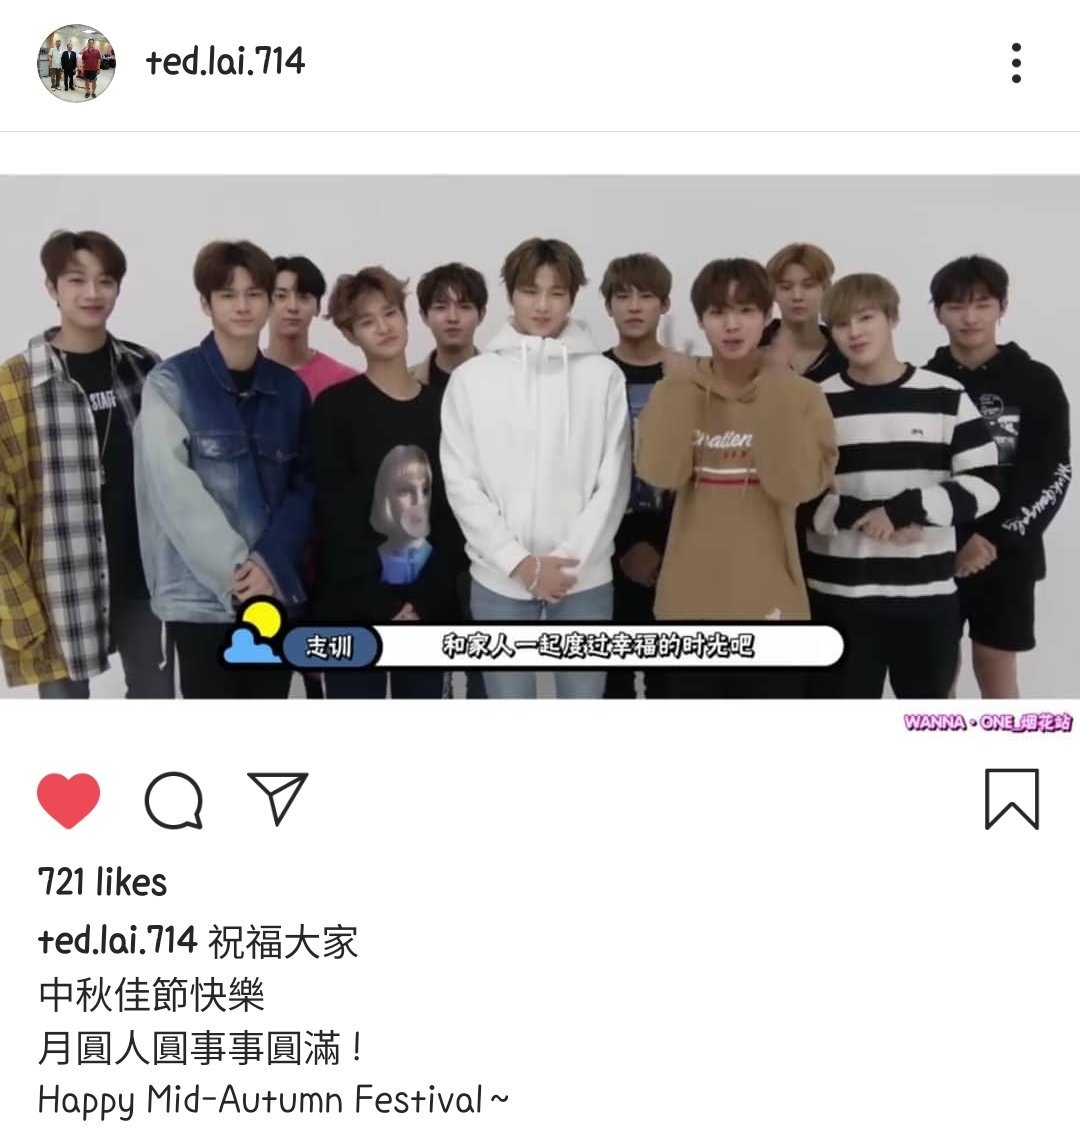 AWW 😭 kuanlin's father posted a OT11 picture of wanna one and wished everyone a happy chuseok / mid-autumn festival 😭😭😭😭😭